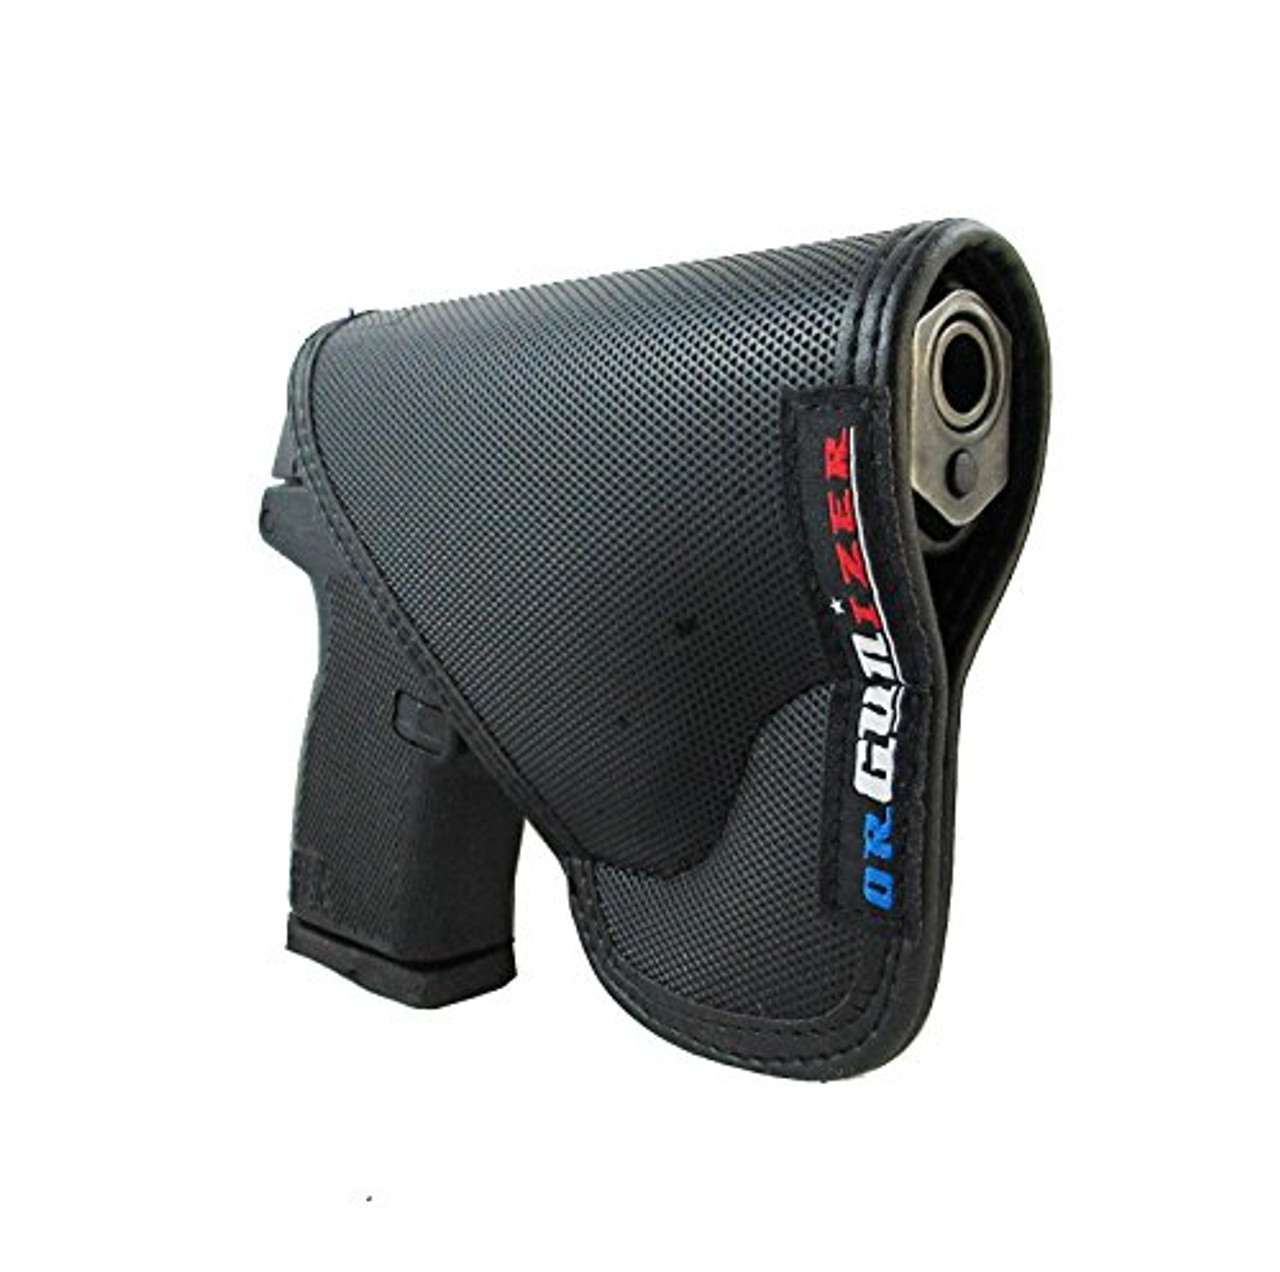 Kel-Tec P-11 Custom Fit Leather Trimmed D orGUNizer Poly Pocket Holster For Concealed Carry Comfort (D)